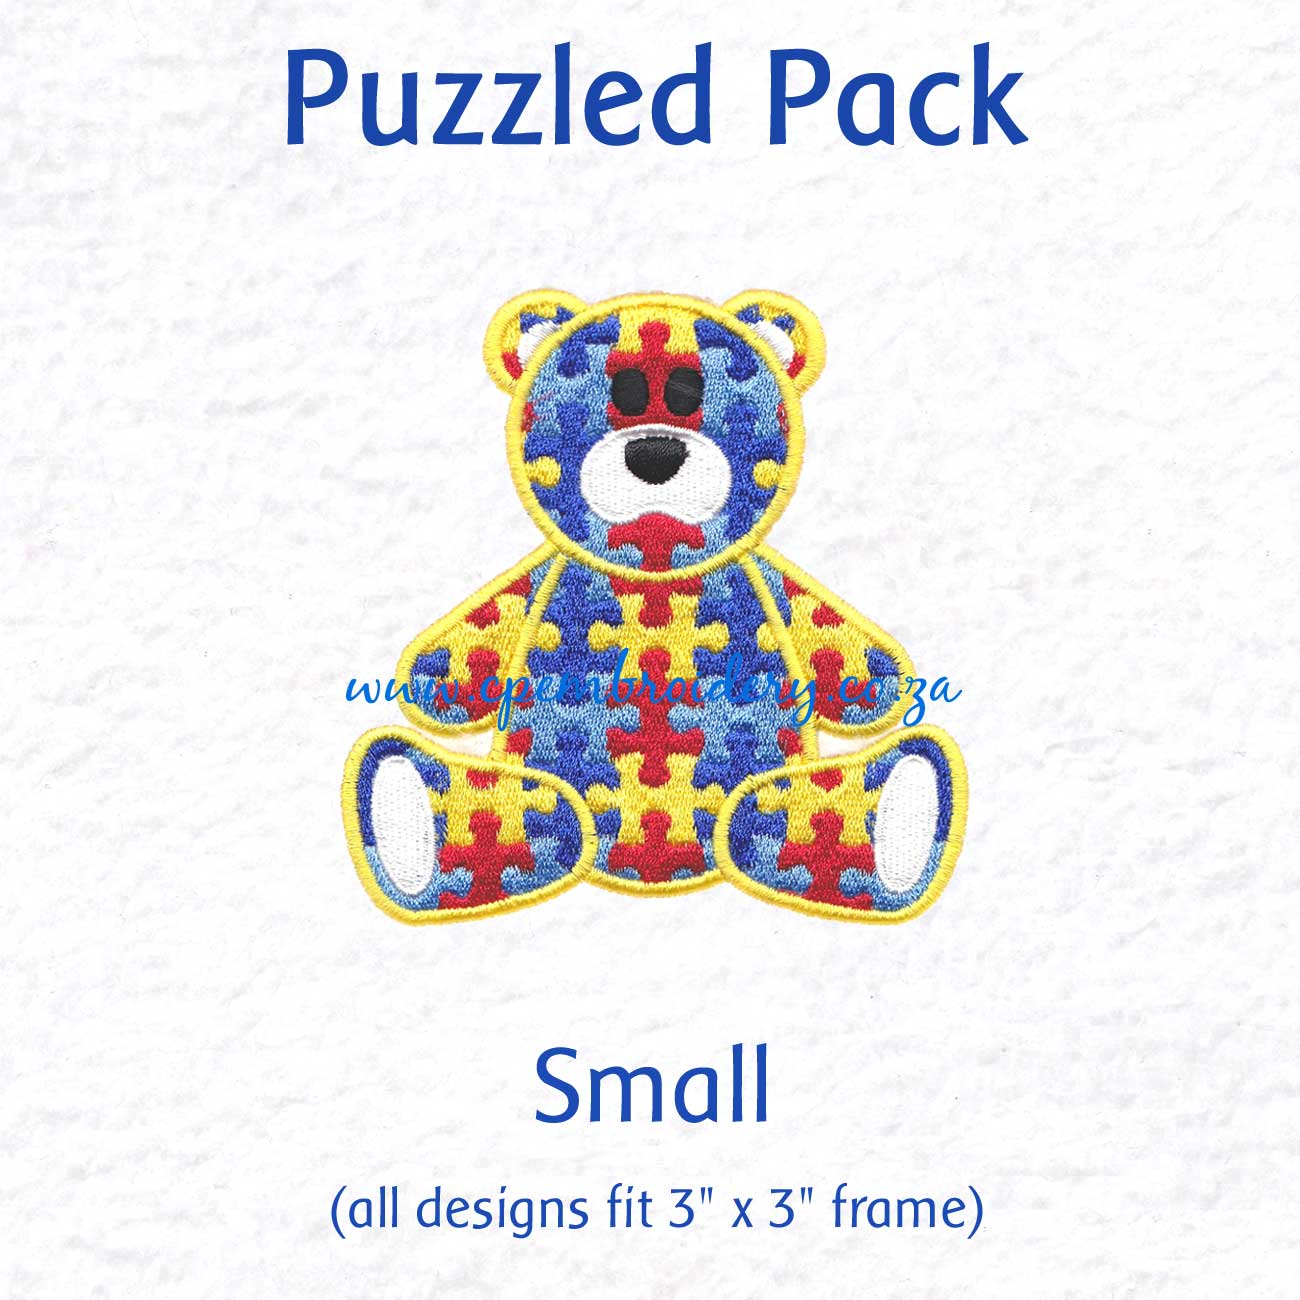 various interlocking colored colorful puzzle detail pieces puzzled support embroidery design support autism awareness pack small